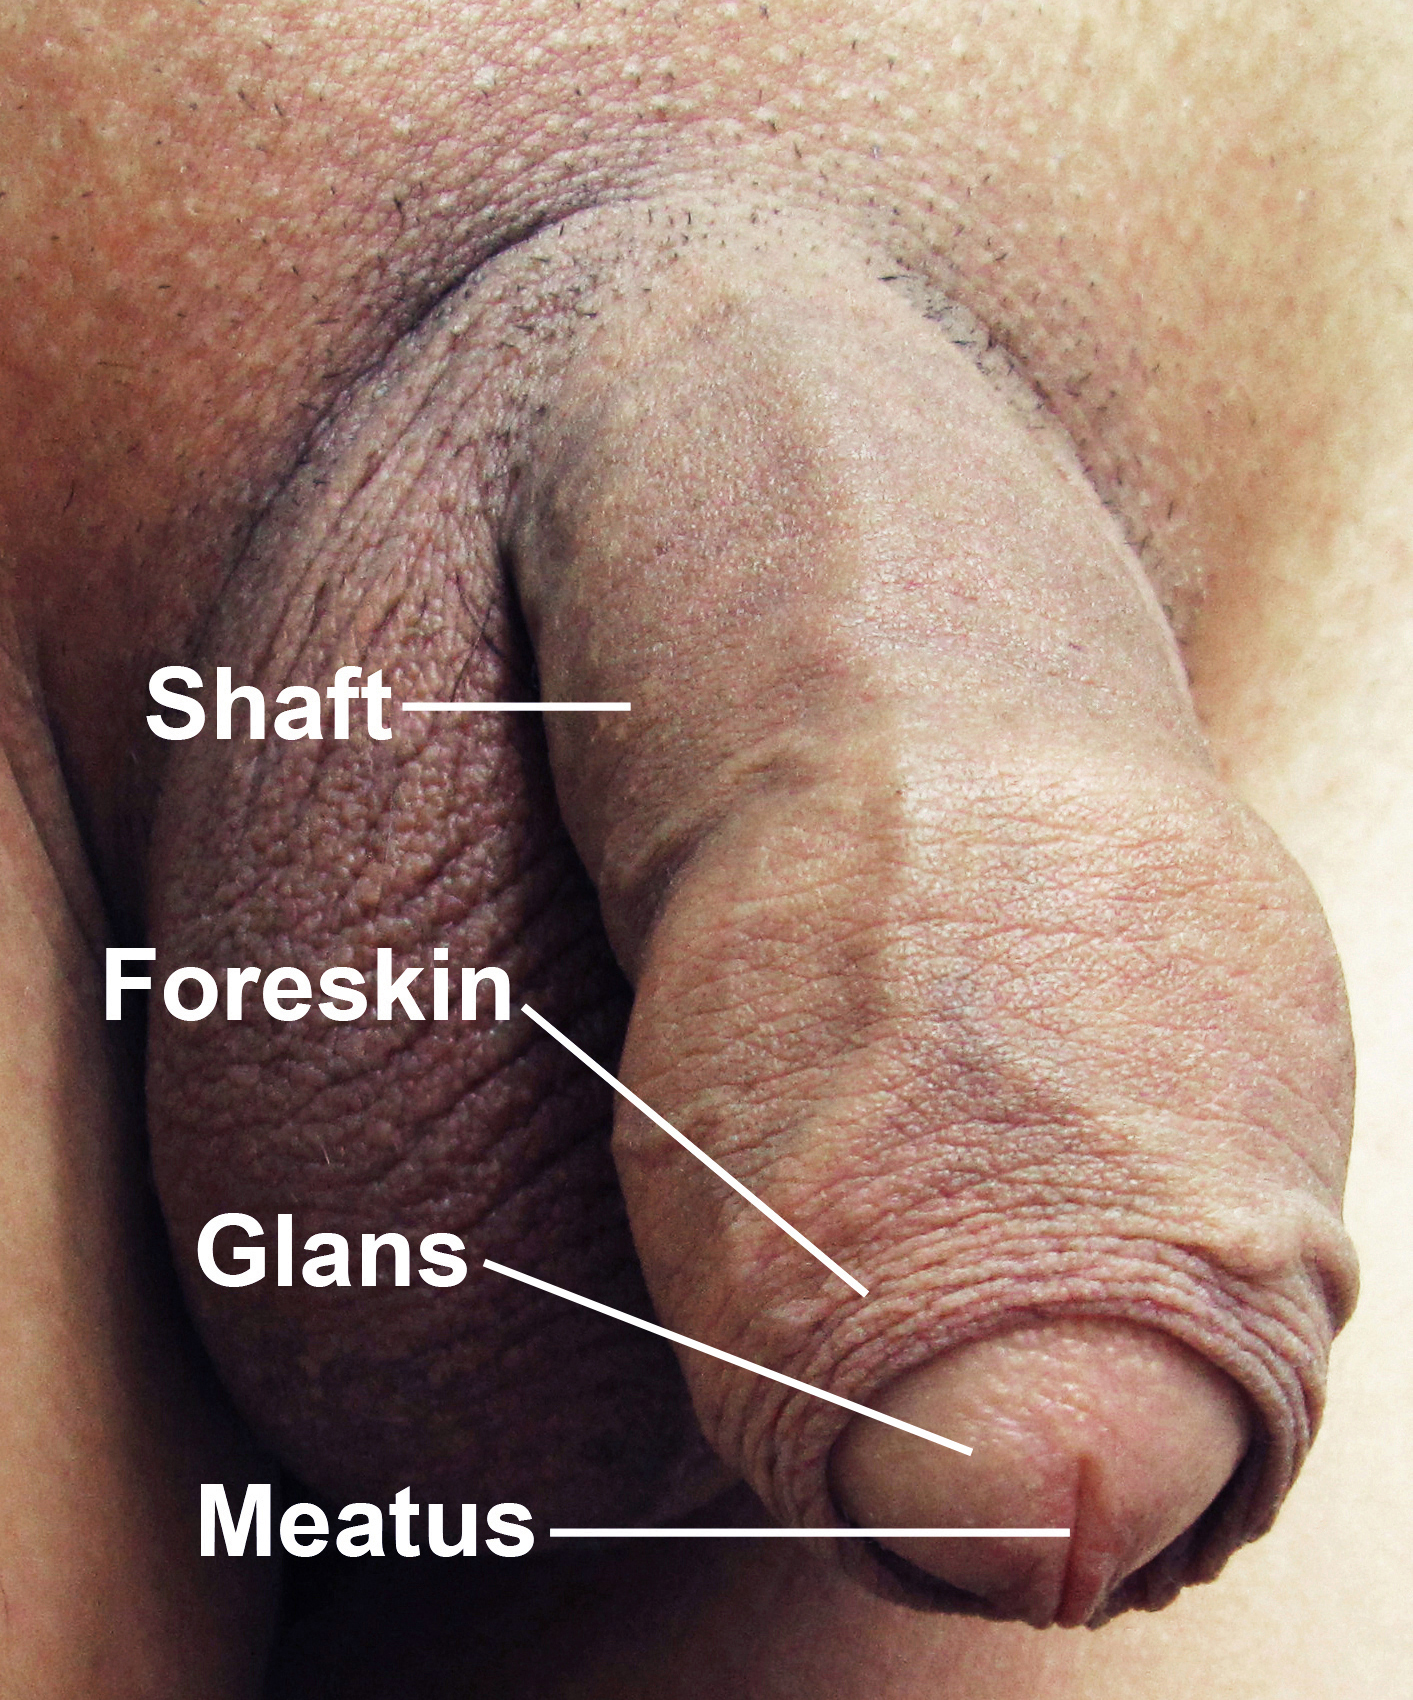 dicker penis sex